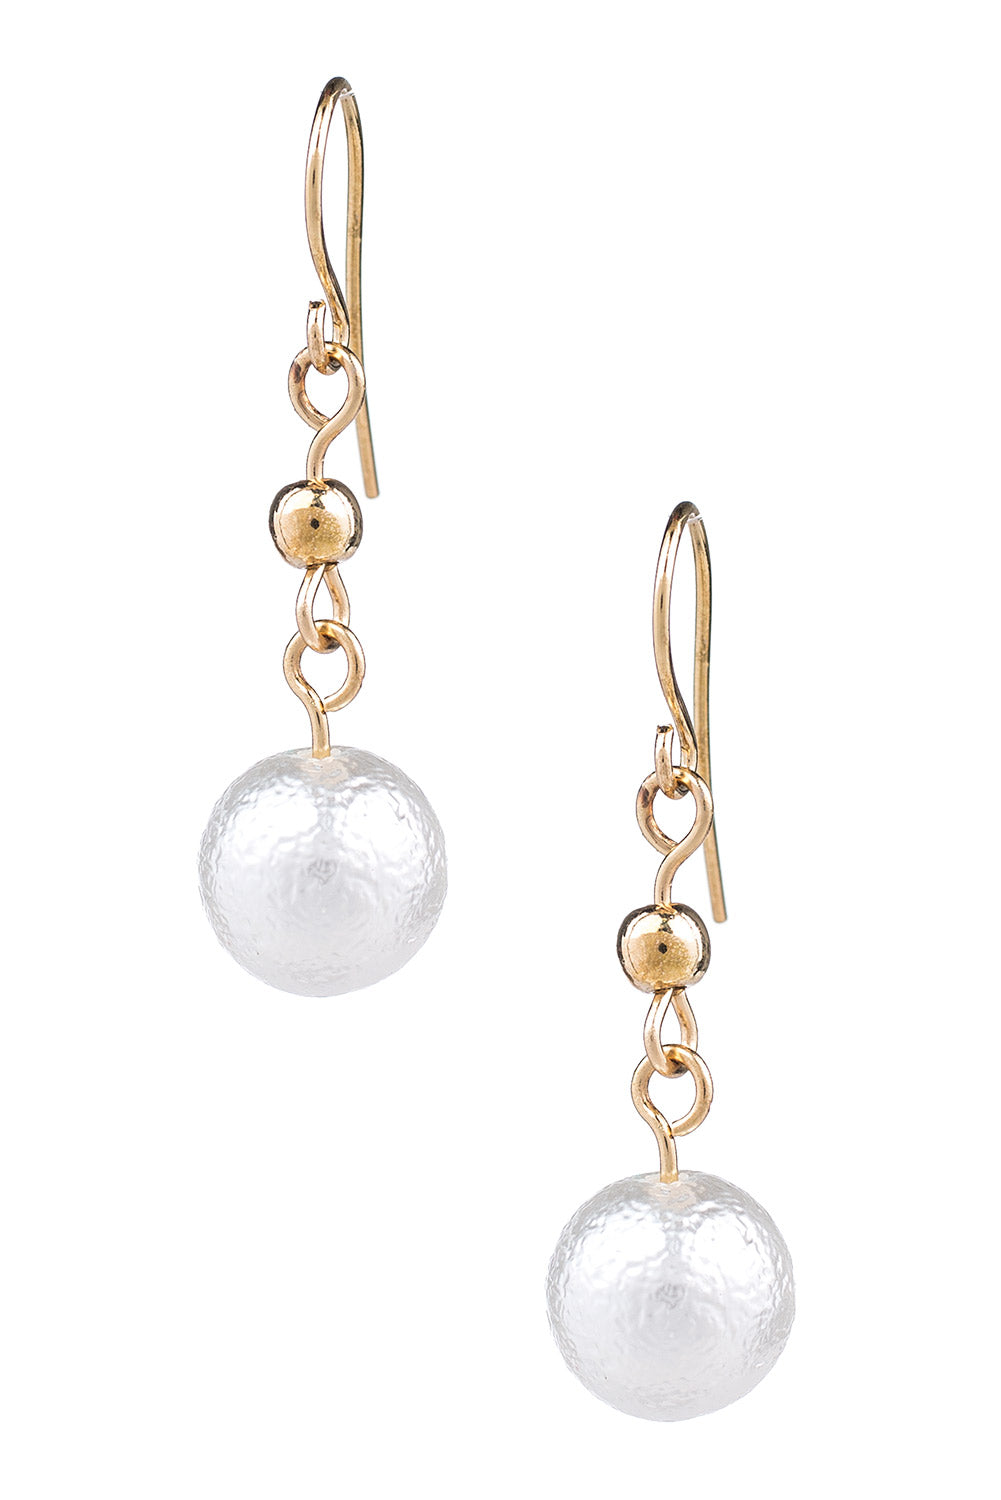 Type 1 Bedecked With Pearls Earrings